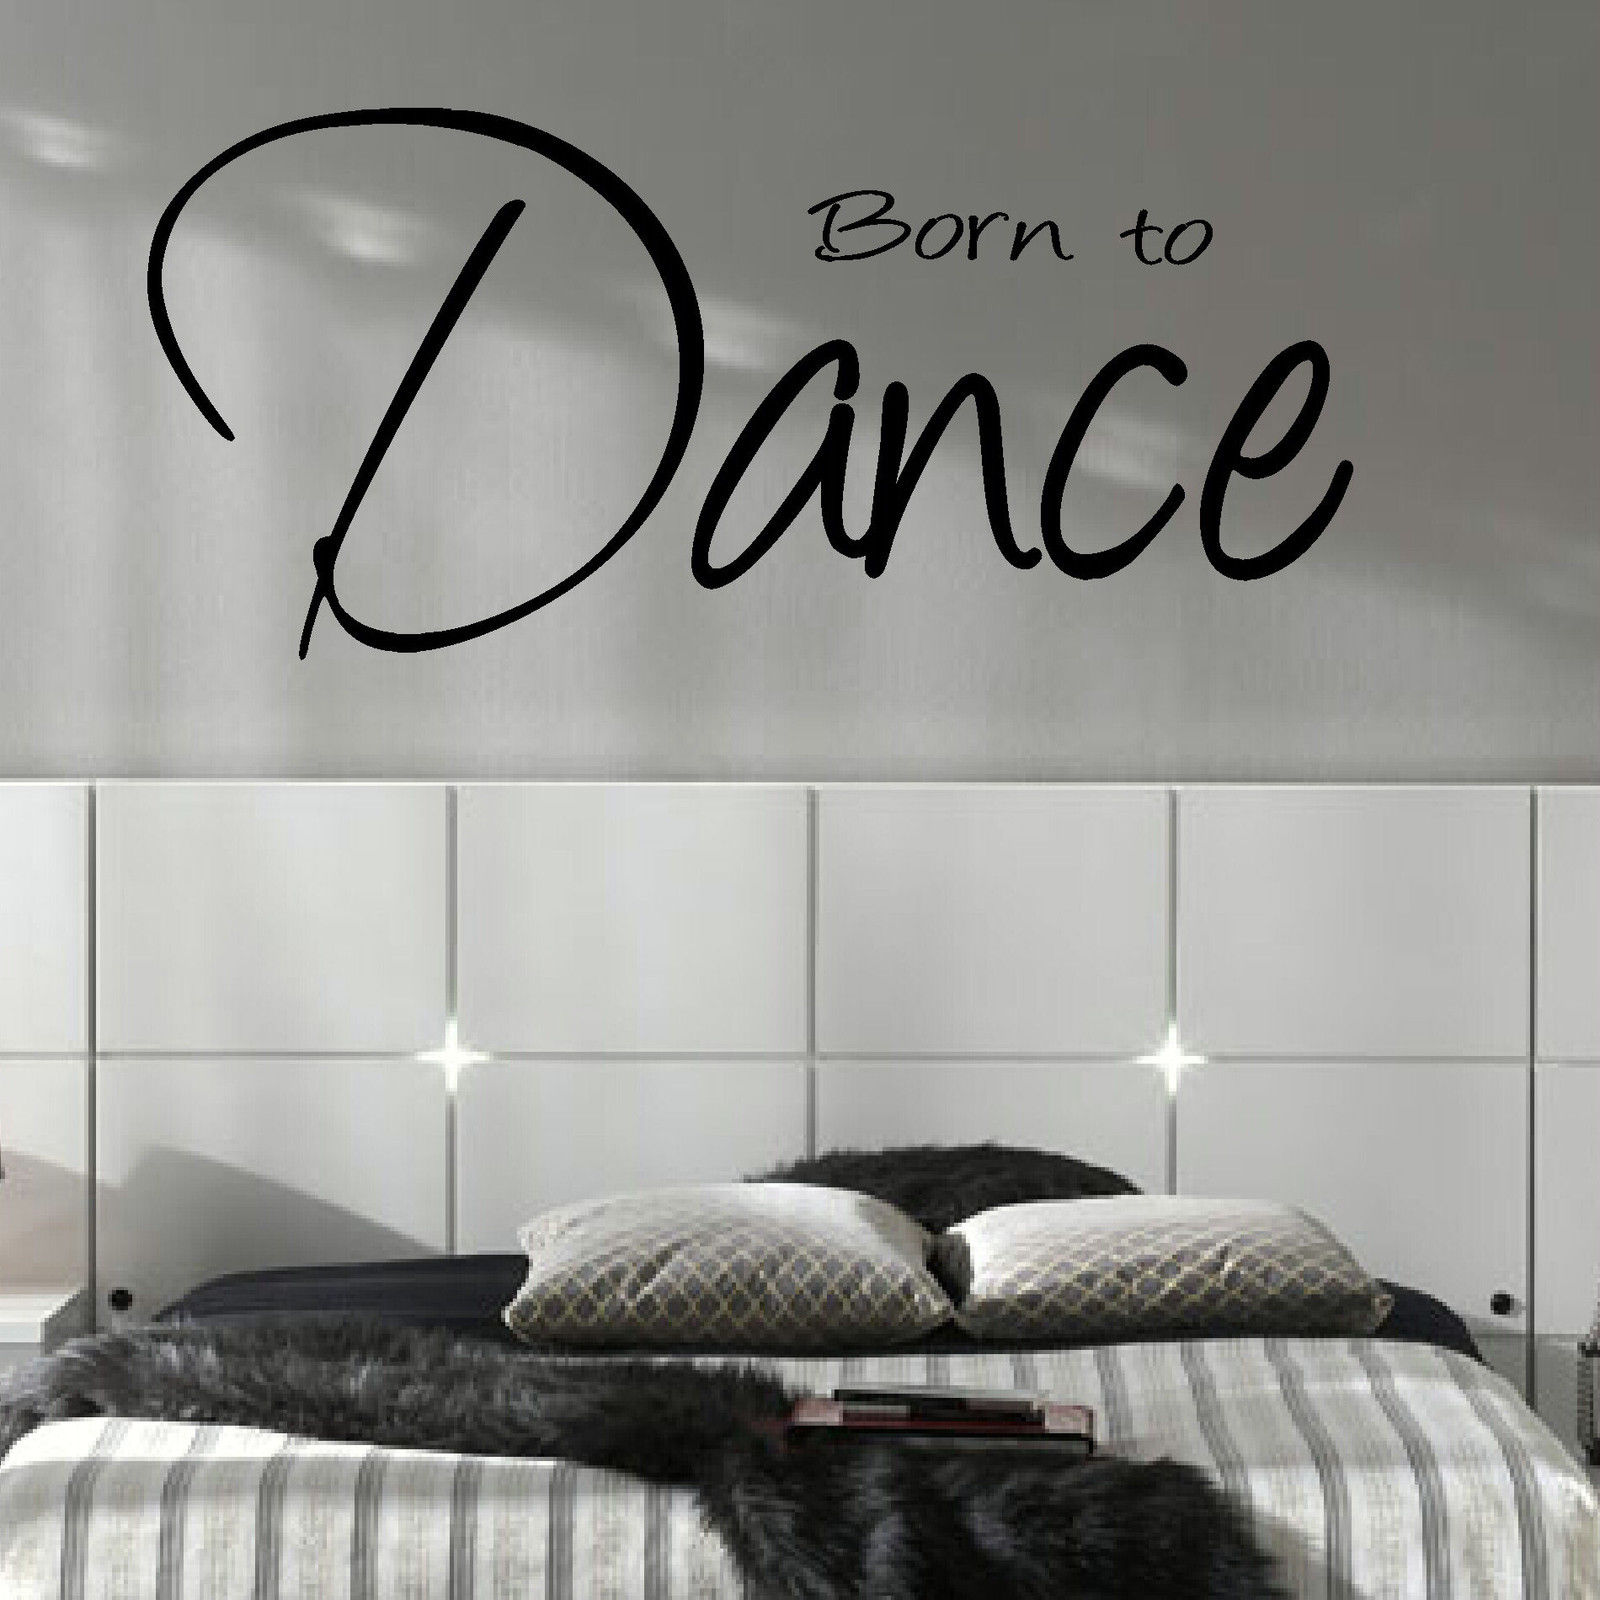 quotes for bedroom wall large bedroom quote born to wall sticker 16927